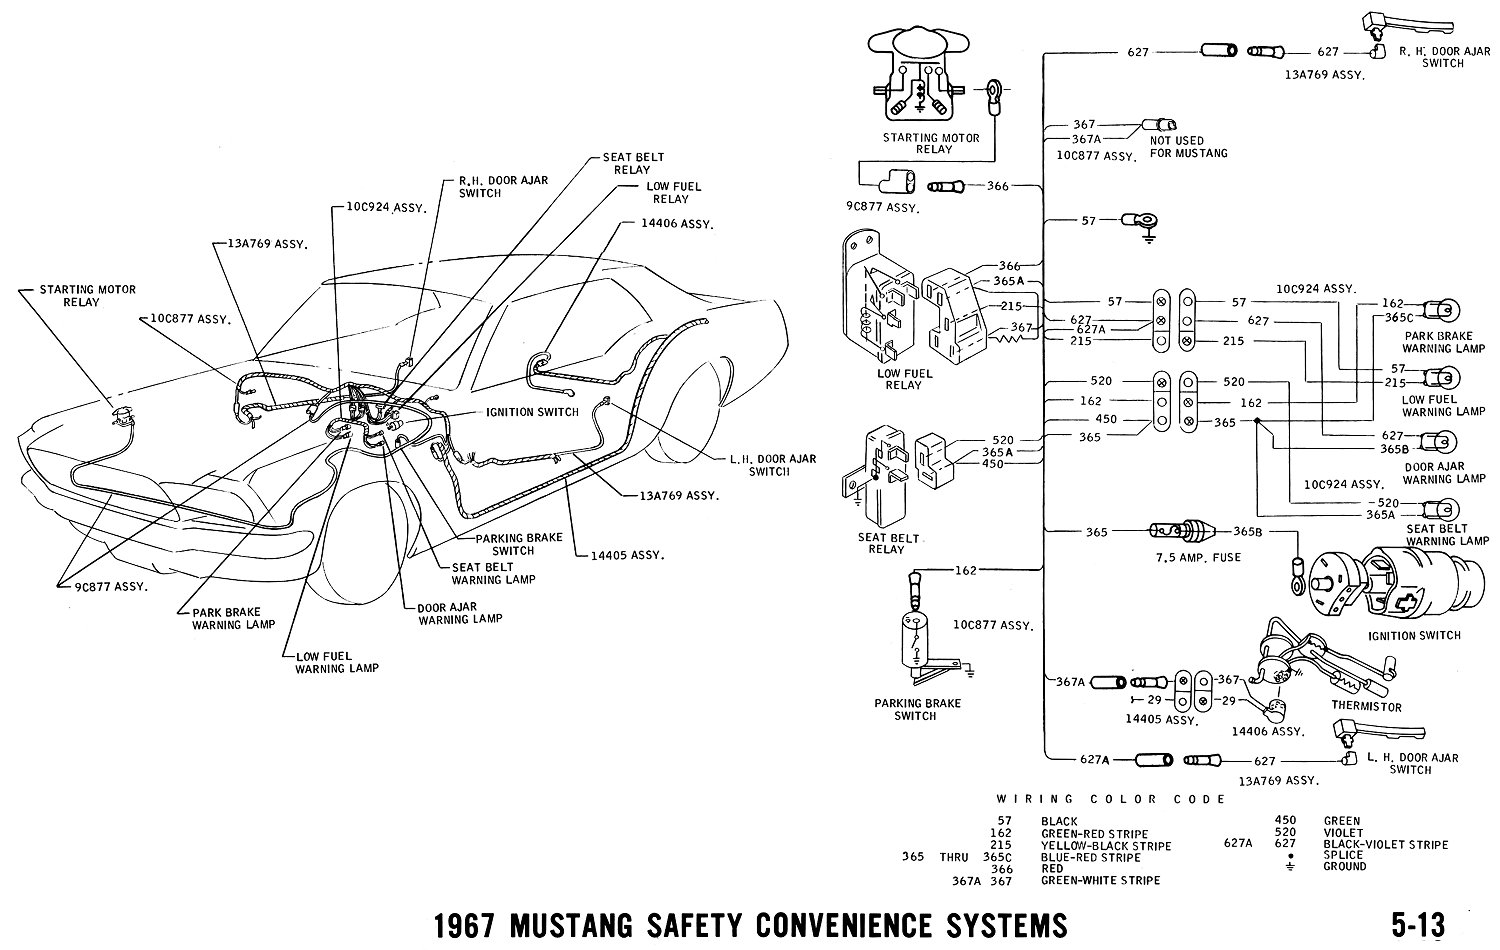 1967 Mustang Wiring And Vacuum Diagrams on breaker box cover